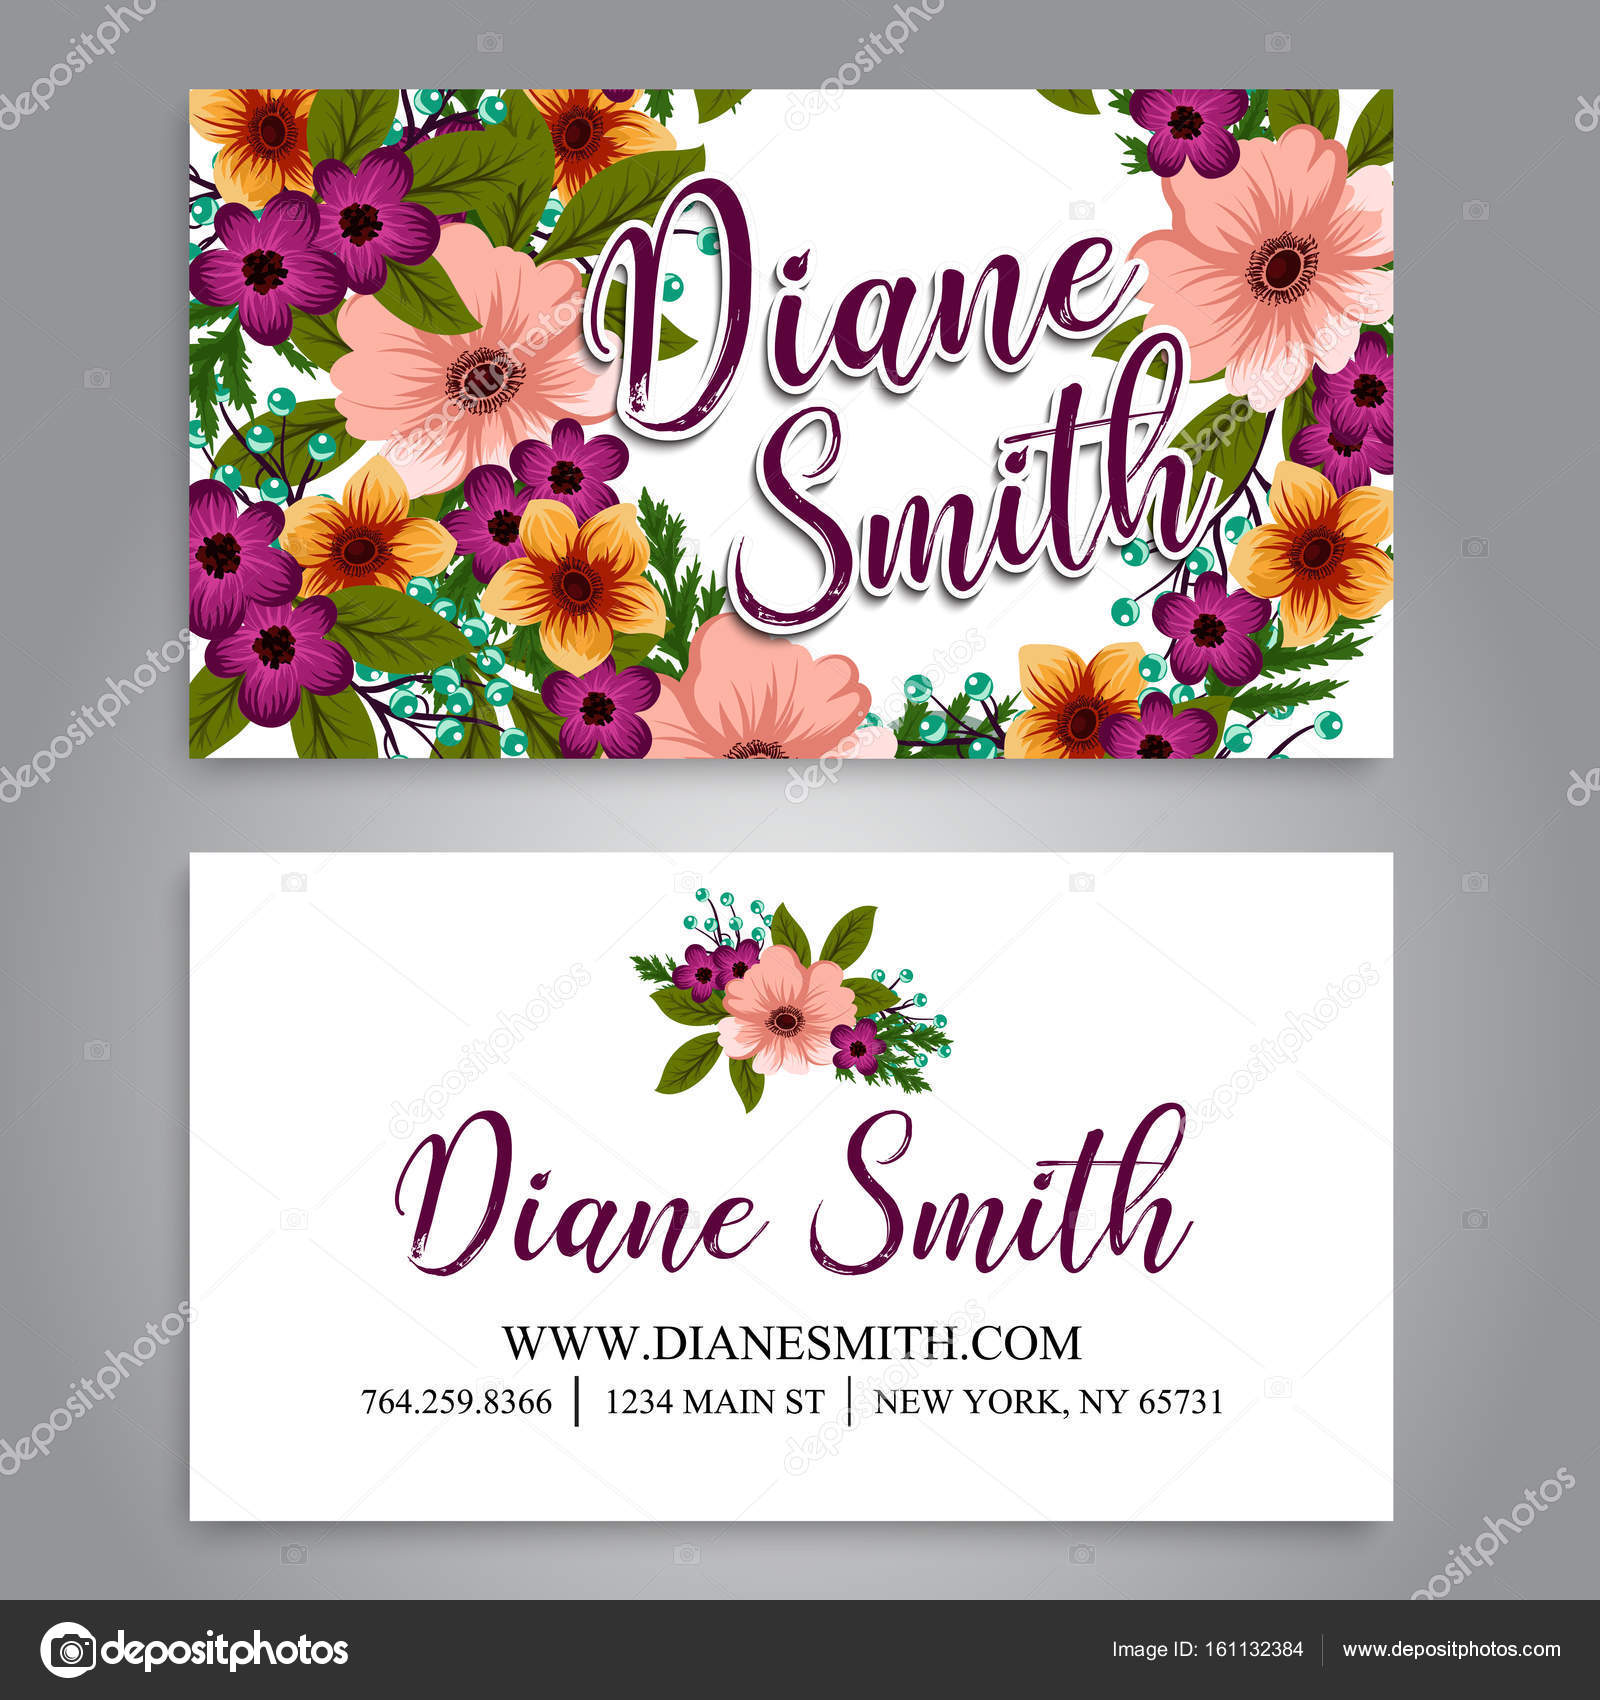 Floral business card template vector — Stock Vector © Doodle_flower ...